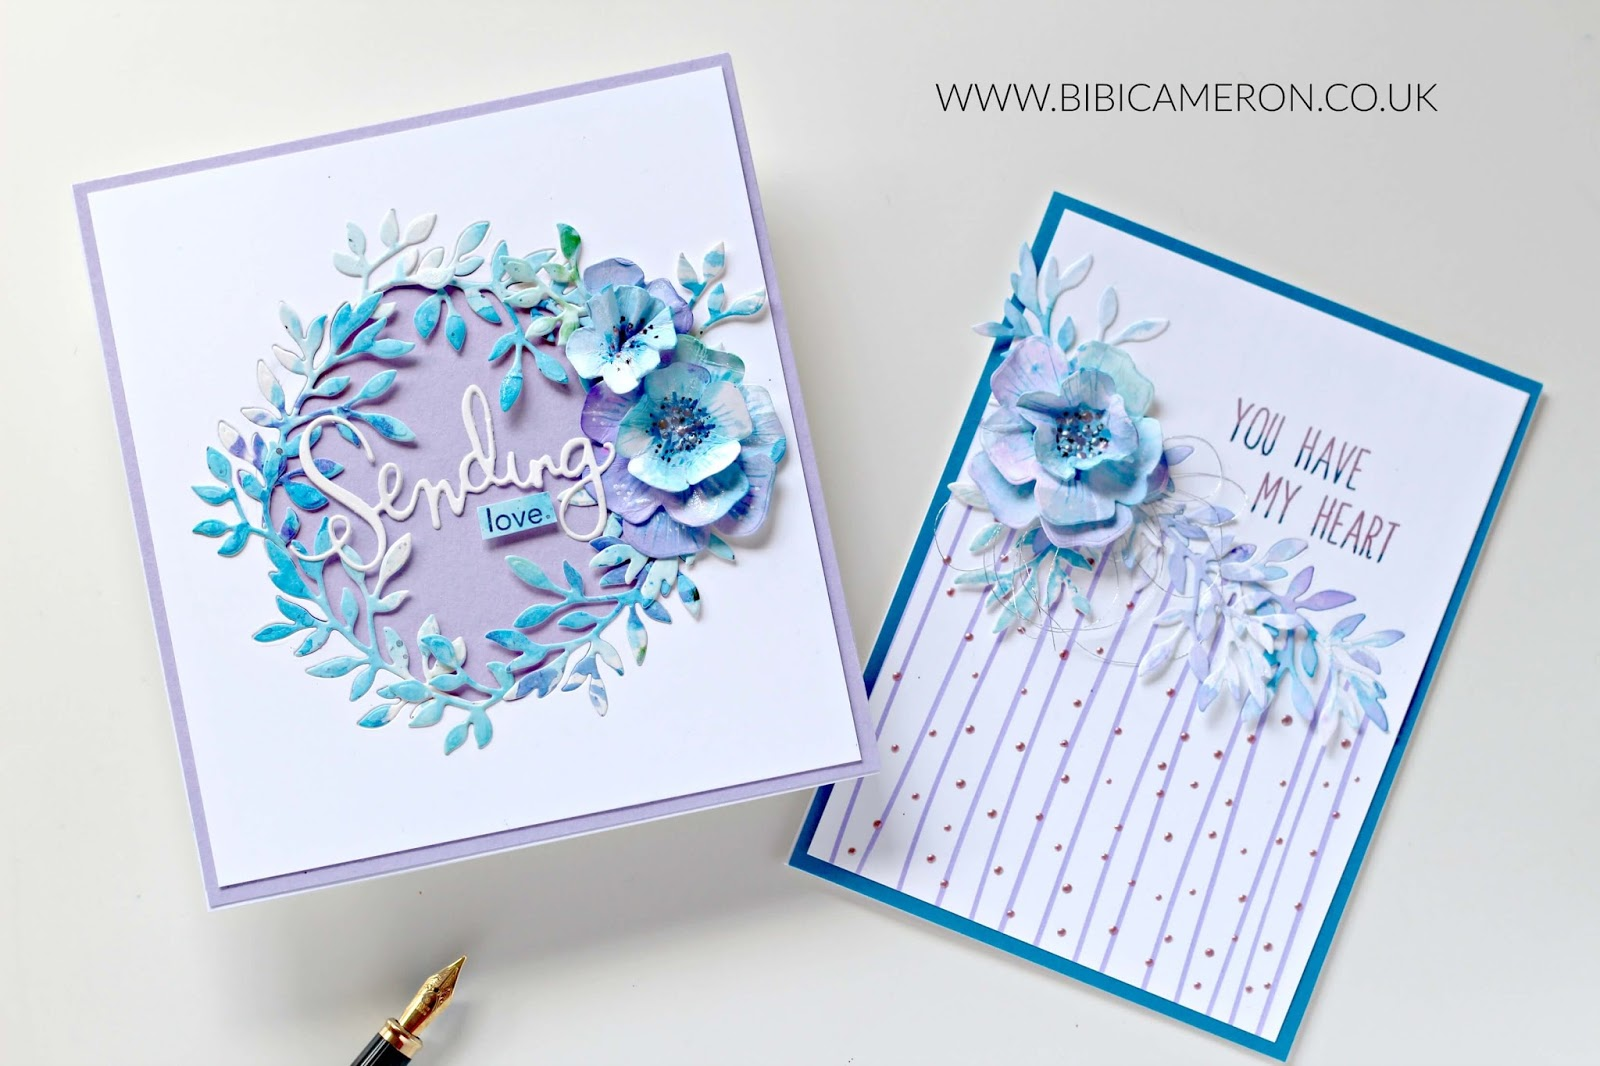 Inlaid Die Cutting with SSS Forget Me Not Wafer Dies